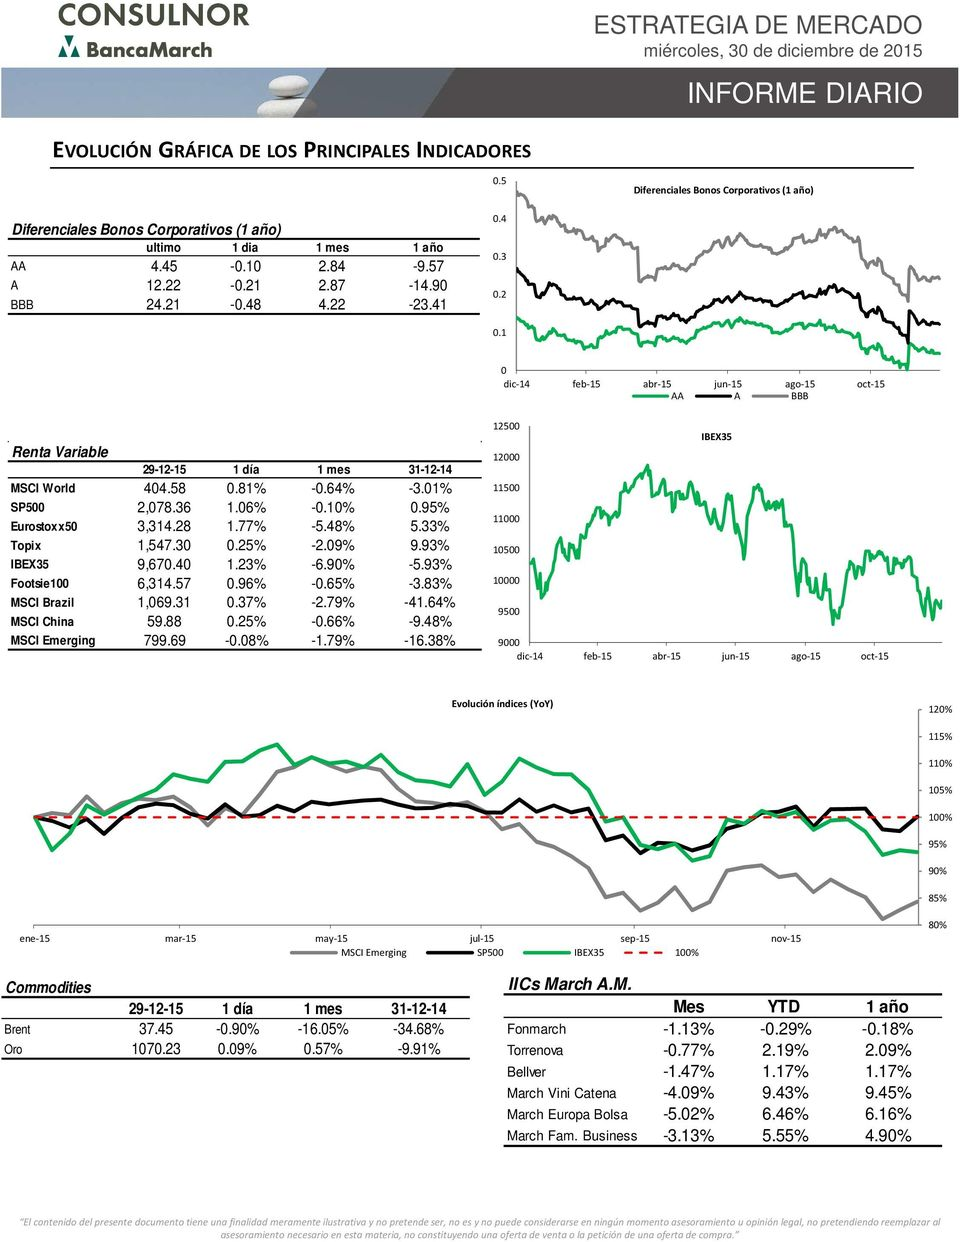 9% -5.9% Footsie 6,4.57.96% -.65% -.8% MSCI Brazil,69..7% -.79% -4.64% MSCI China 59.88.5% -.66% -9.48% MSCI Emerging 799.69 -.8% -.79% -6.